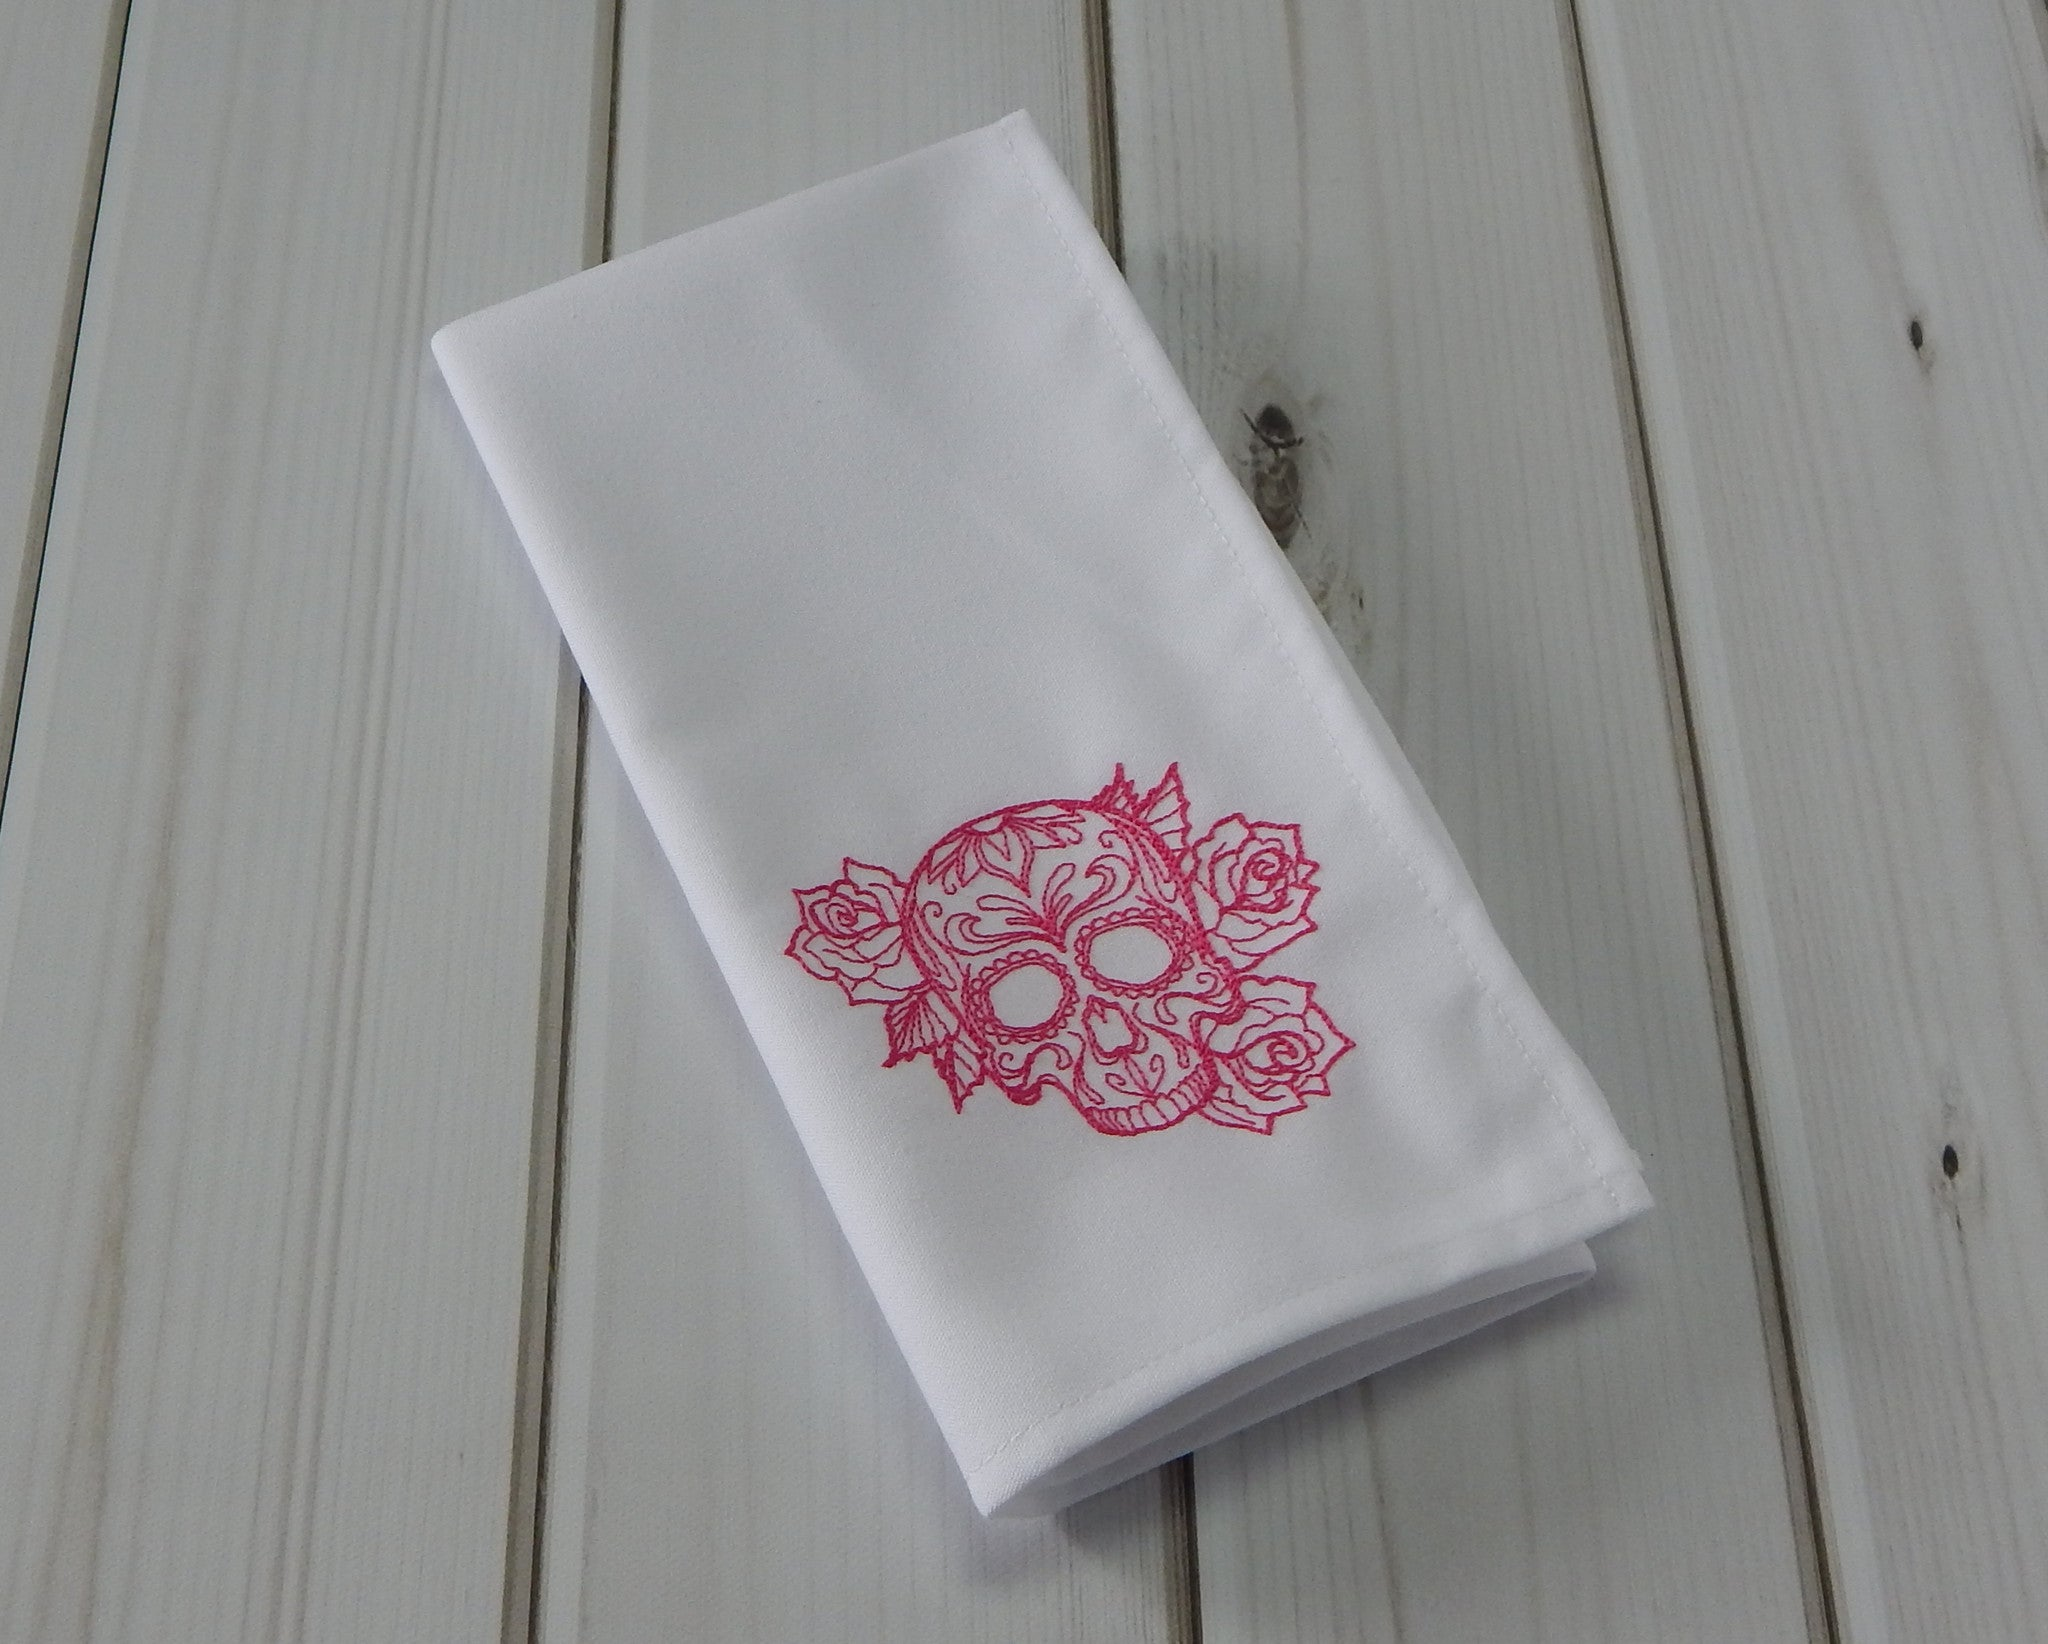 SUGAR SKULLS WHITE - French Press Linens